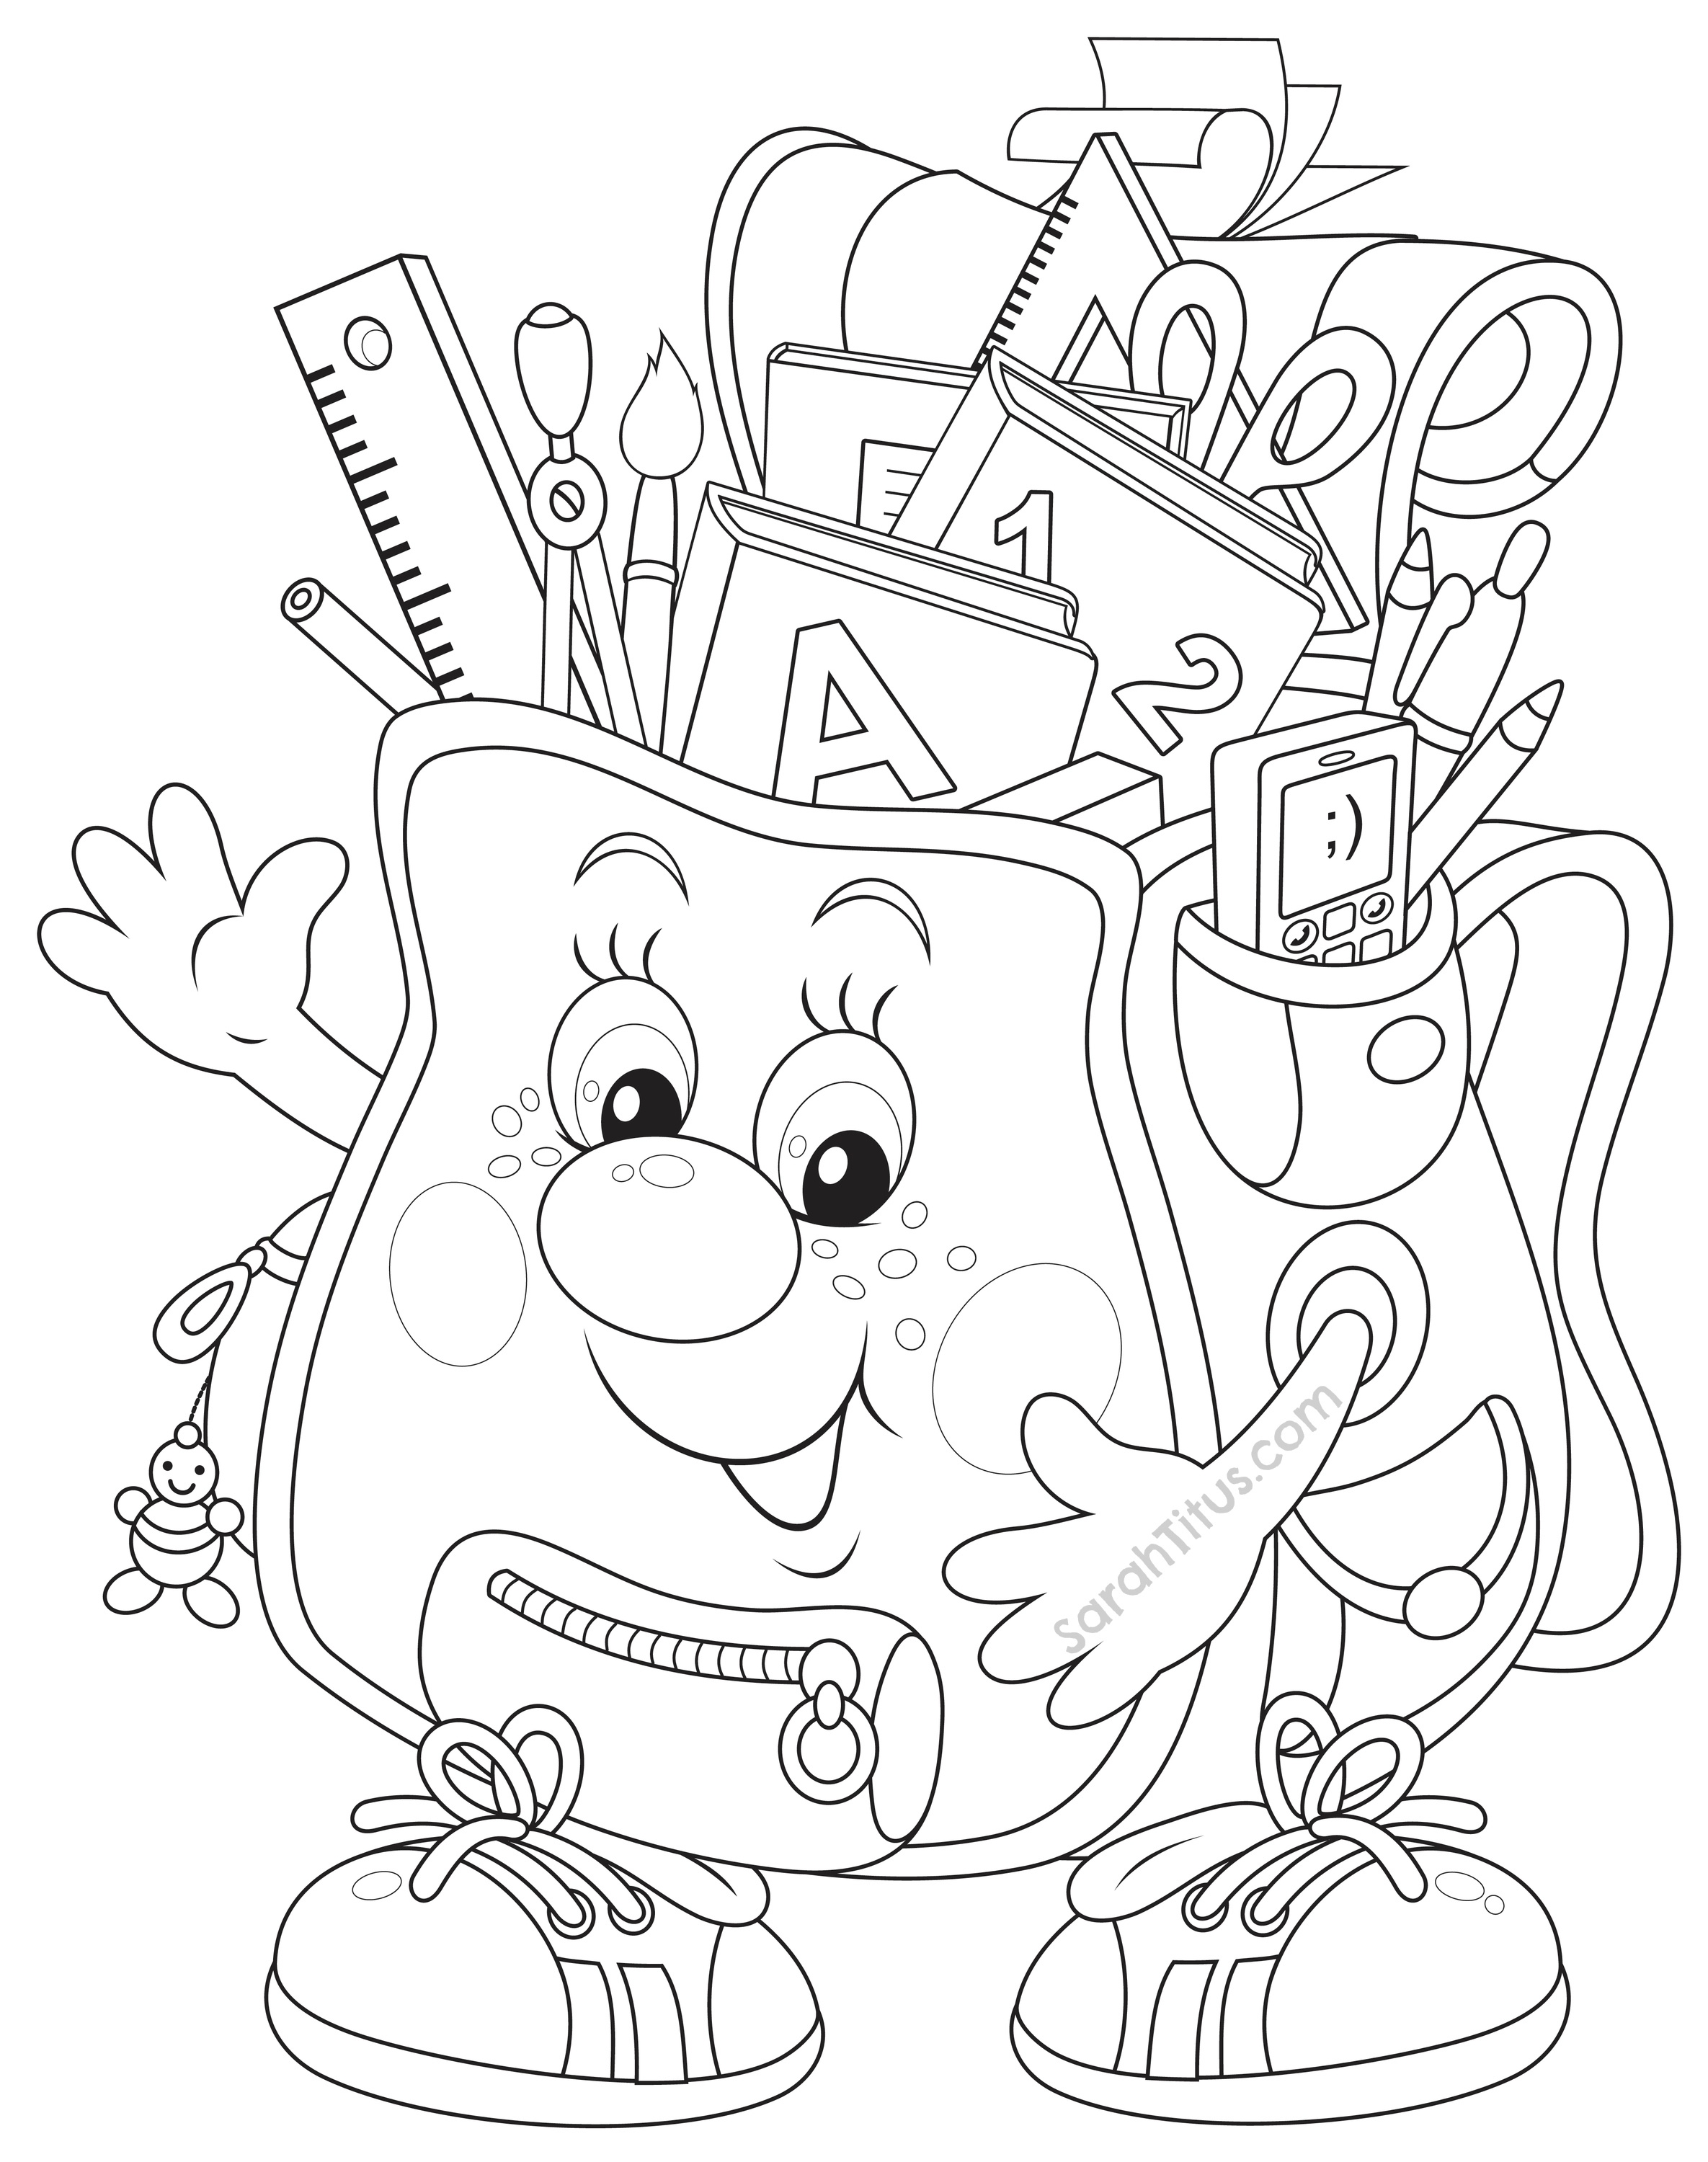 Art Supplies Coloring Pages At Getcolorings